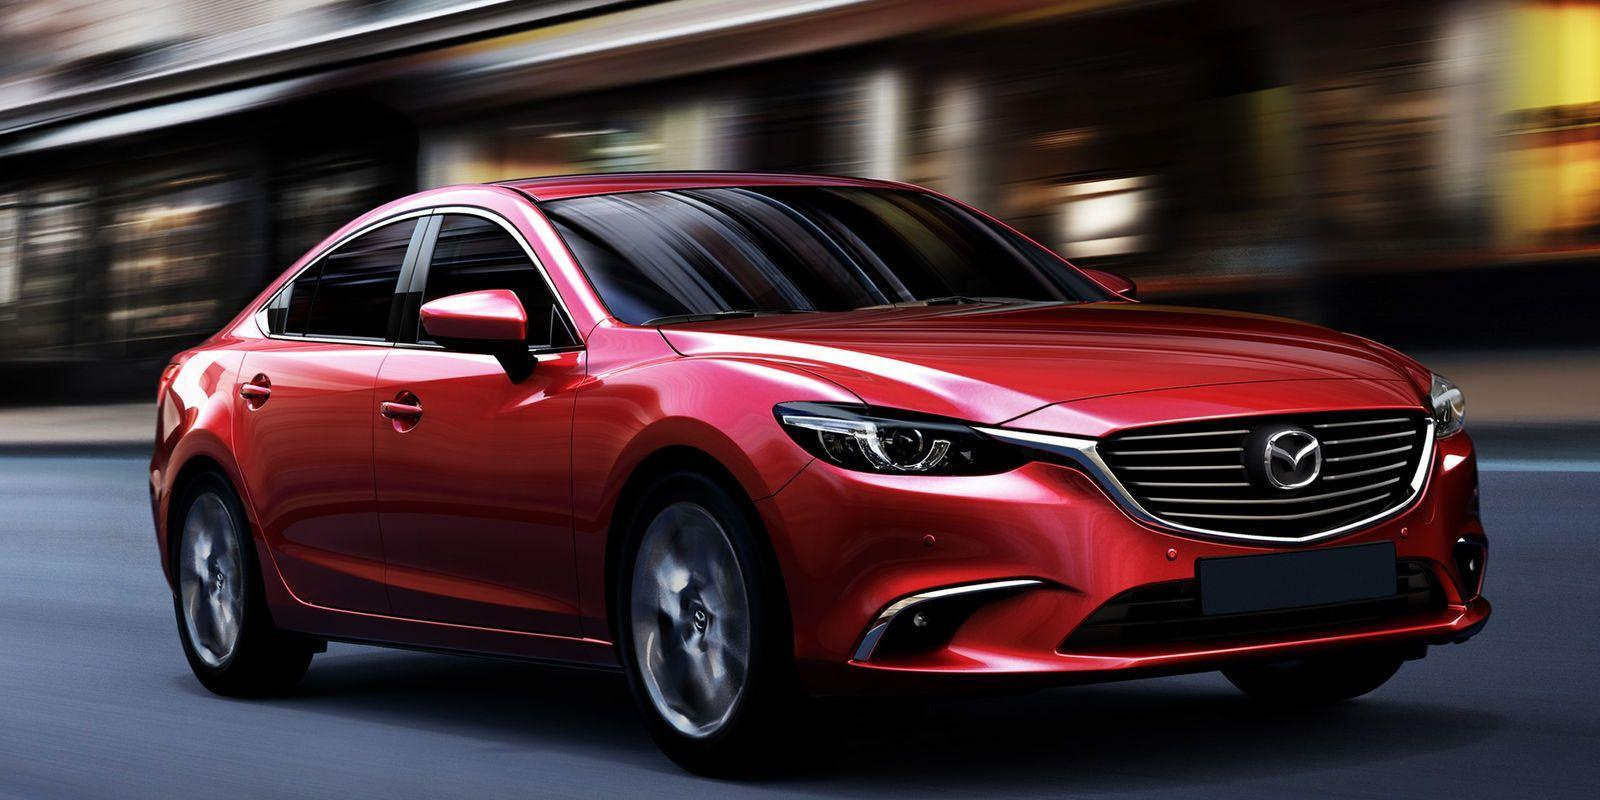 2017 MAZDA 6 MOTION WALLPAPERS (25795) - Freefuncar.com